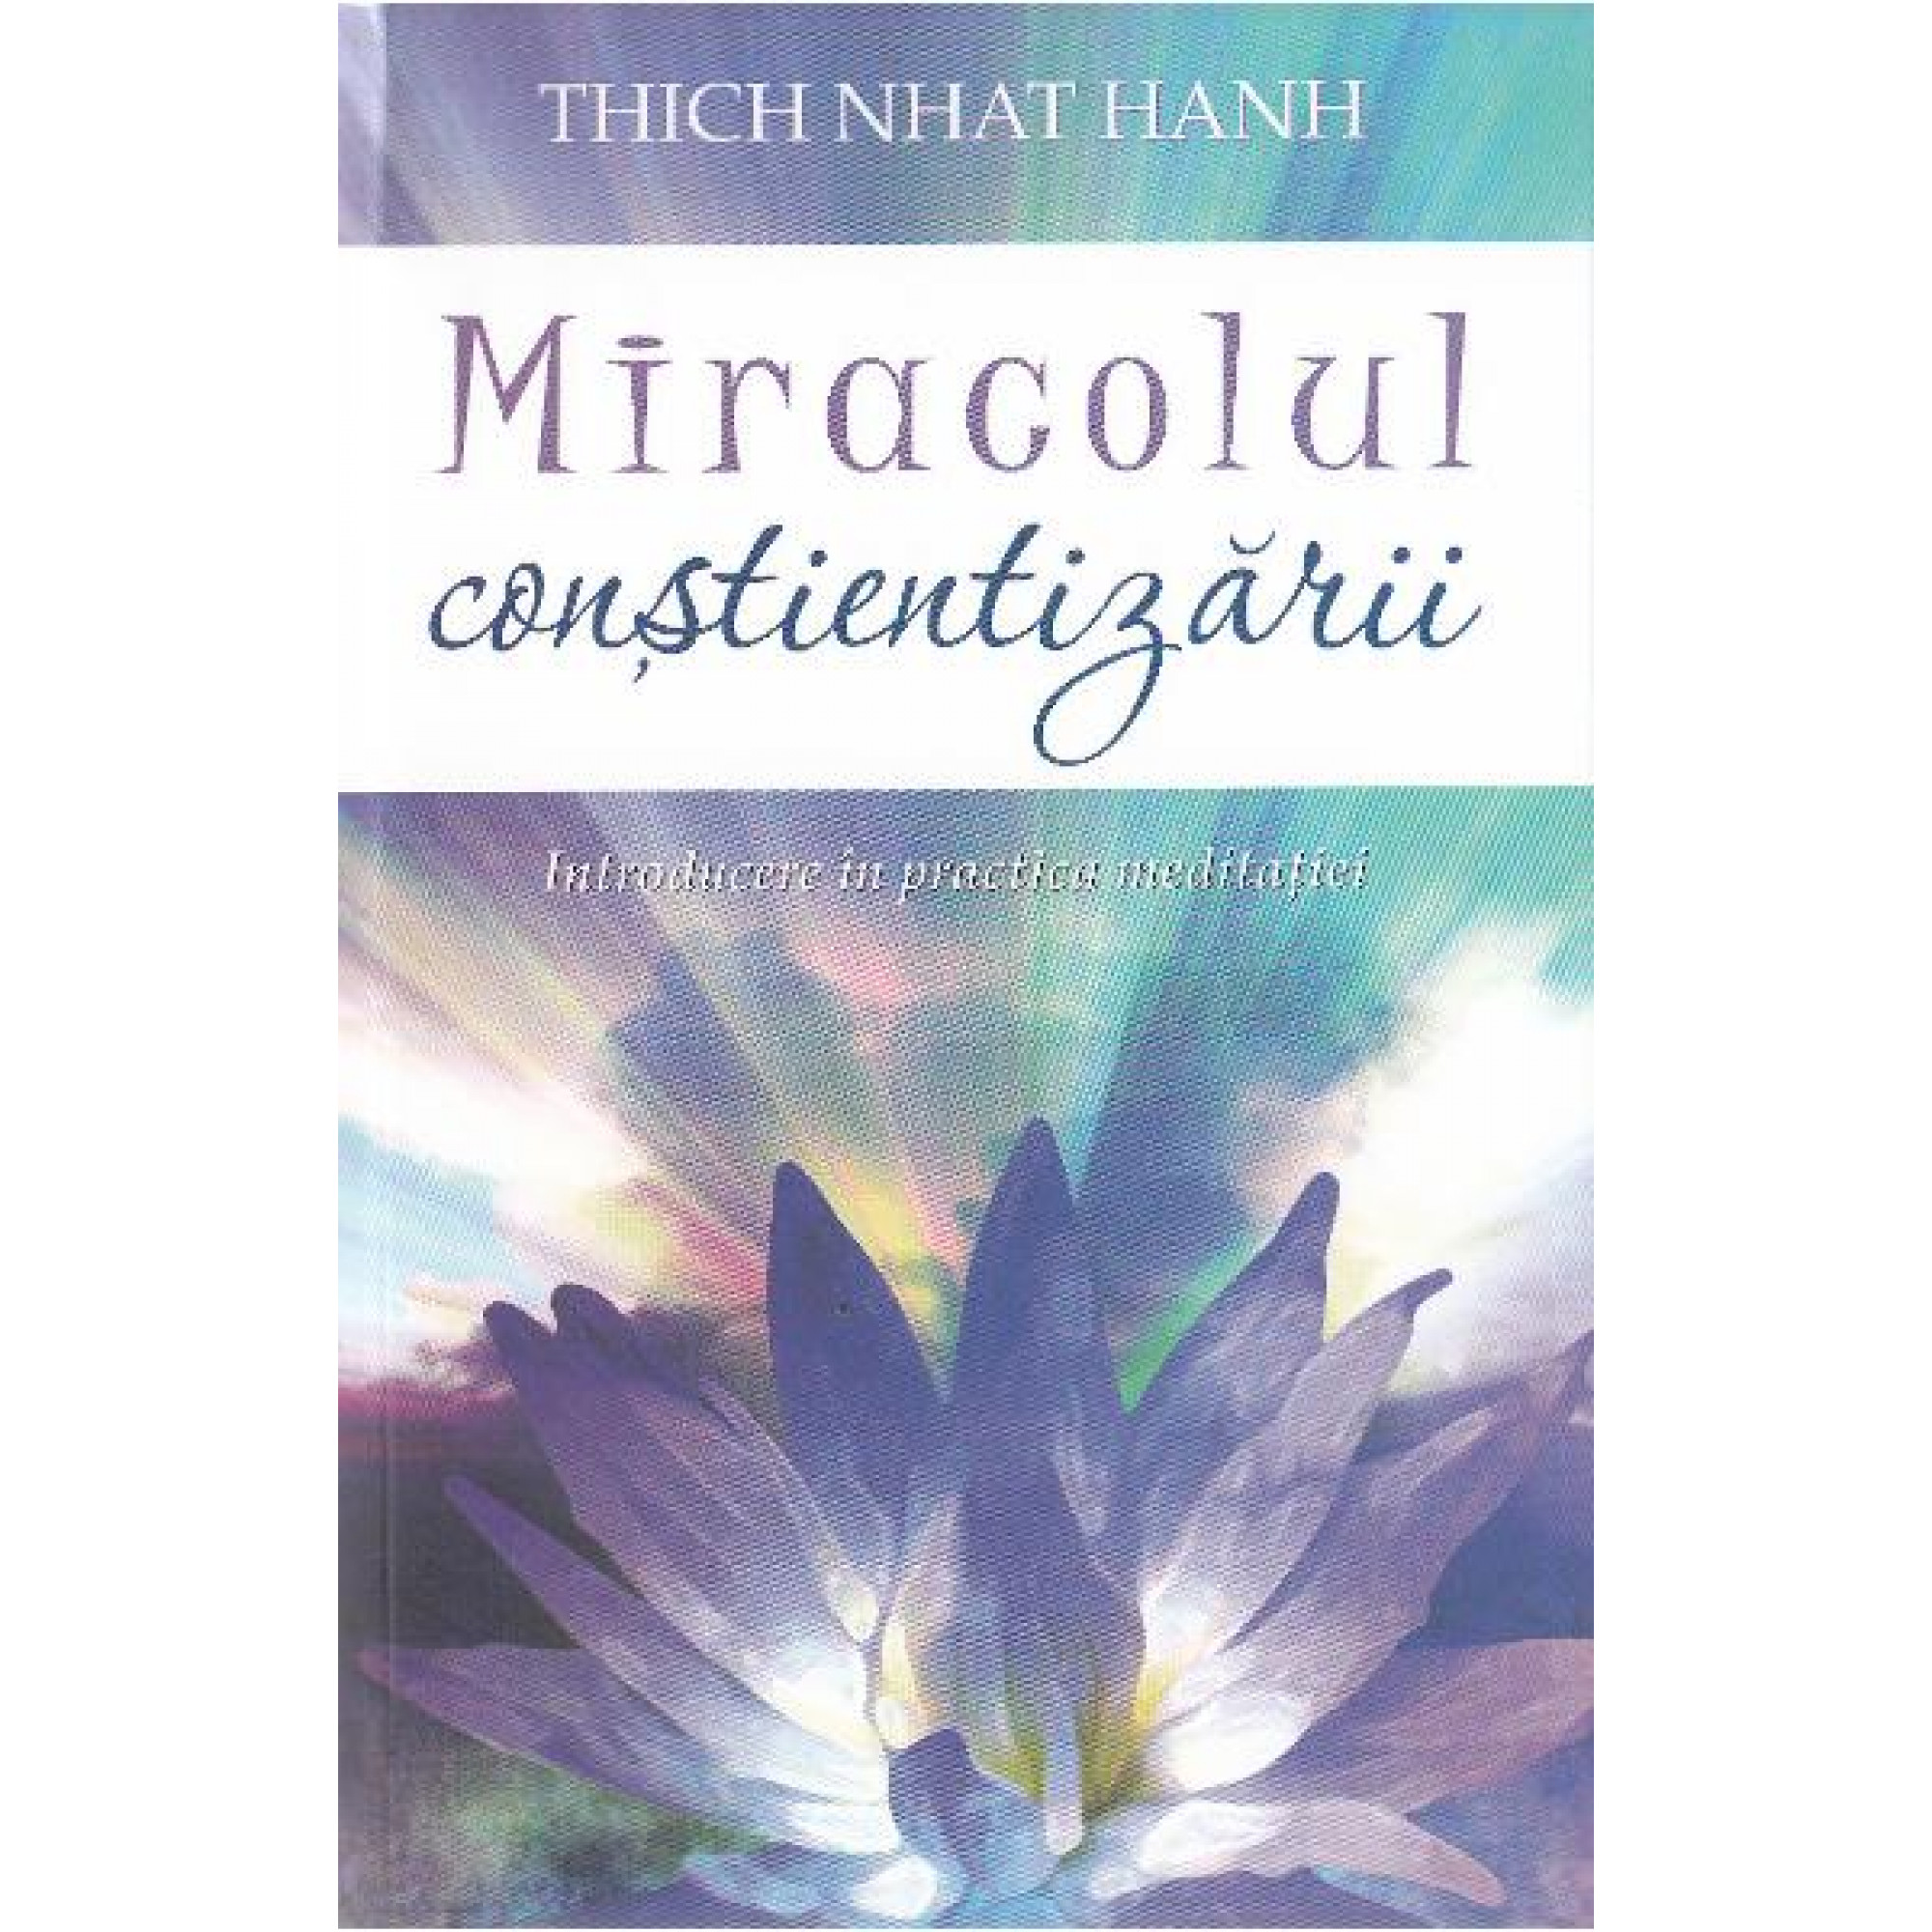 Miracolul conștientizării; Thich Nhat Hanh